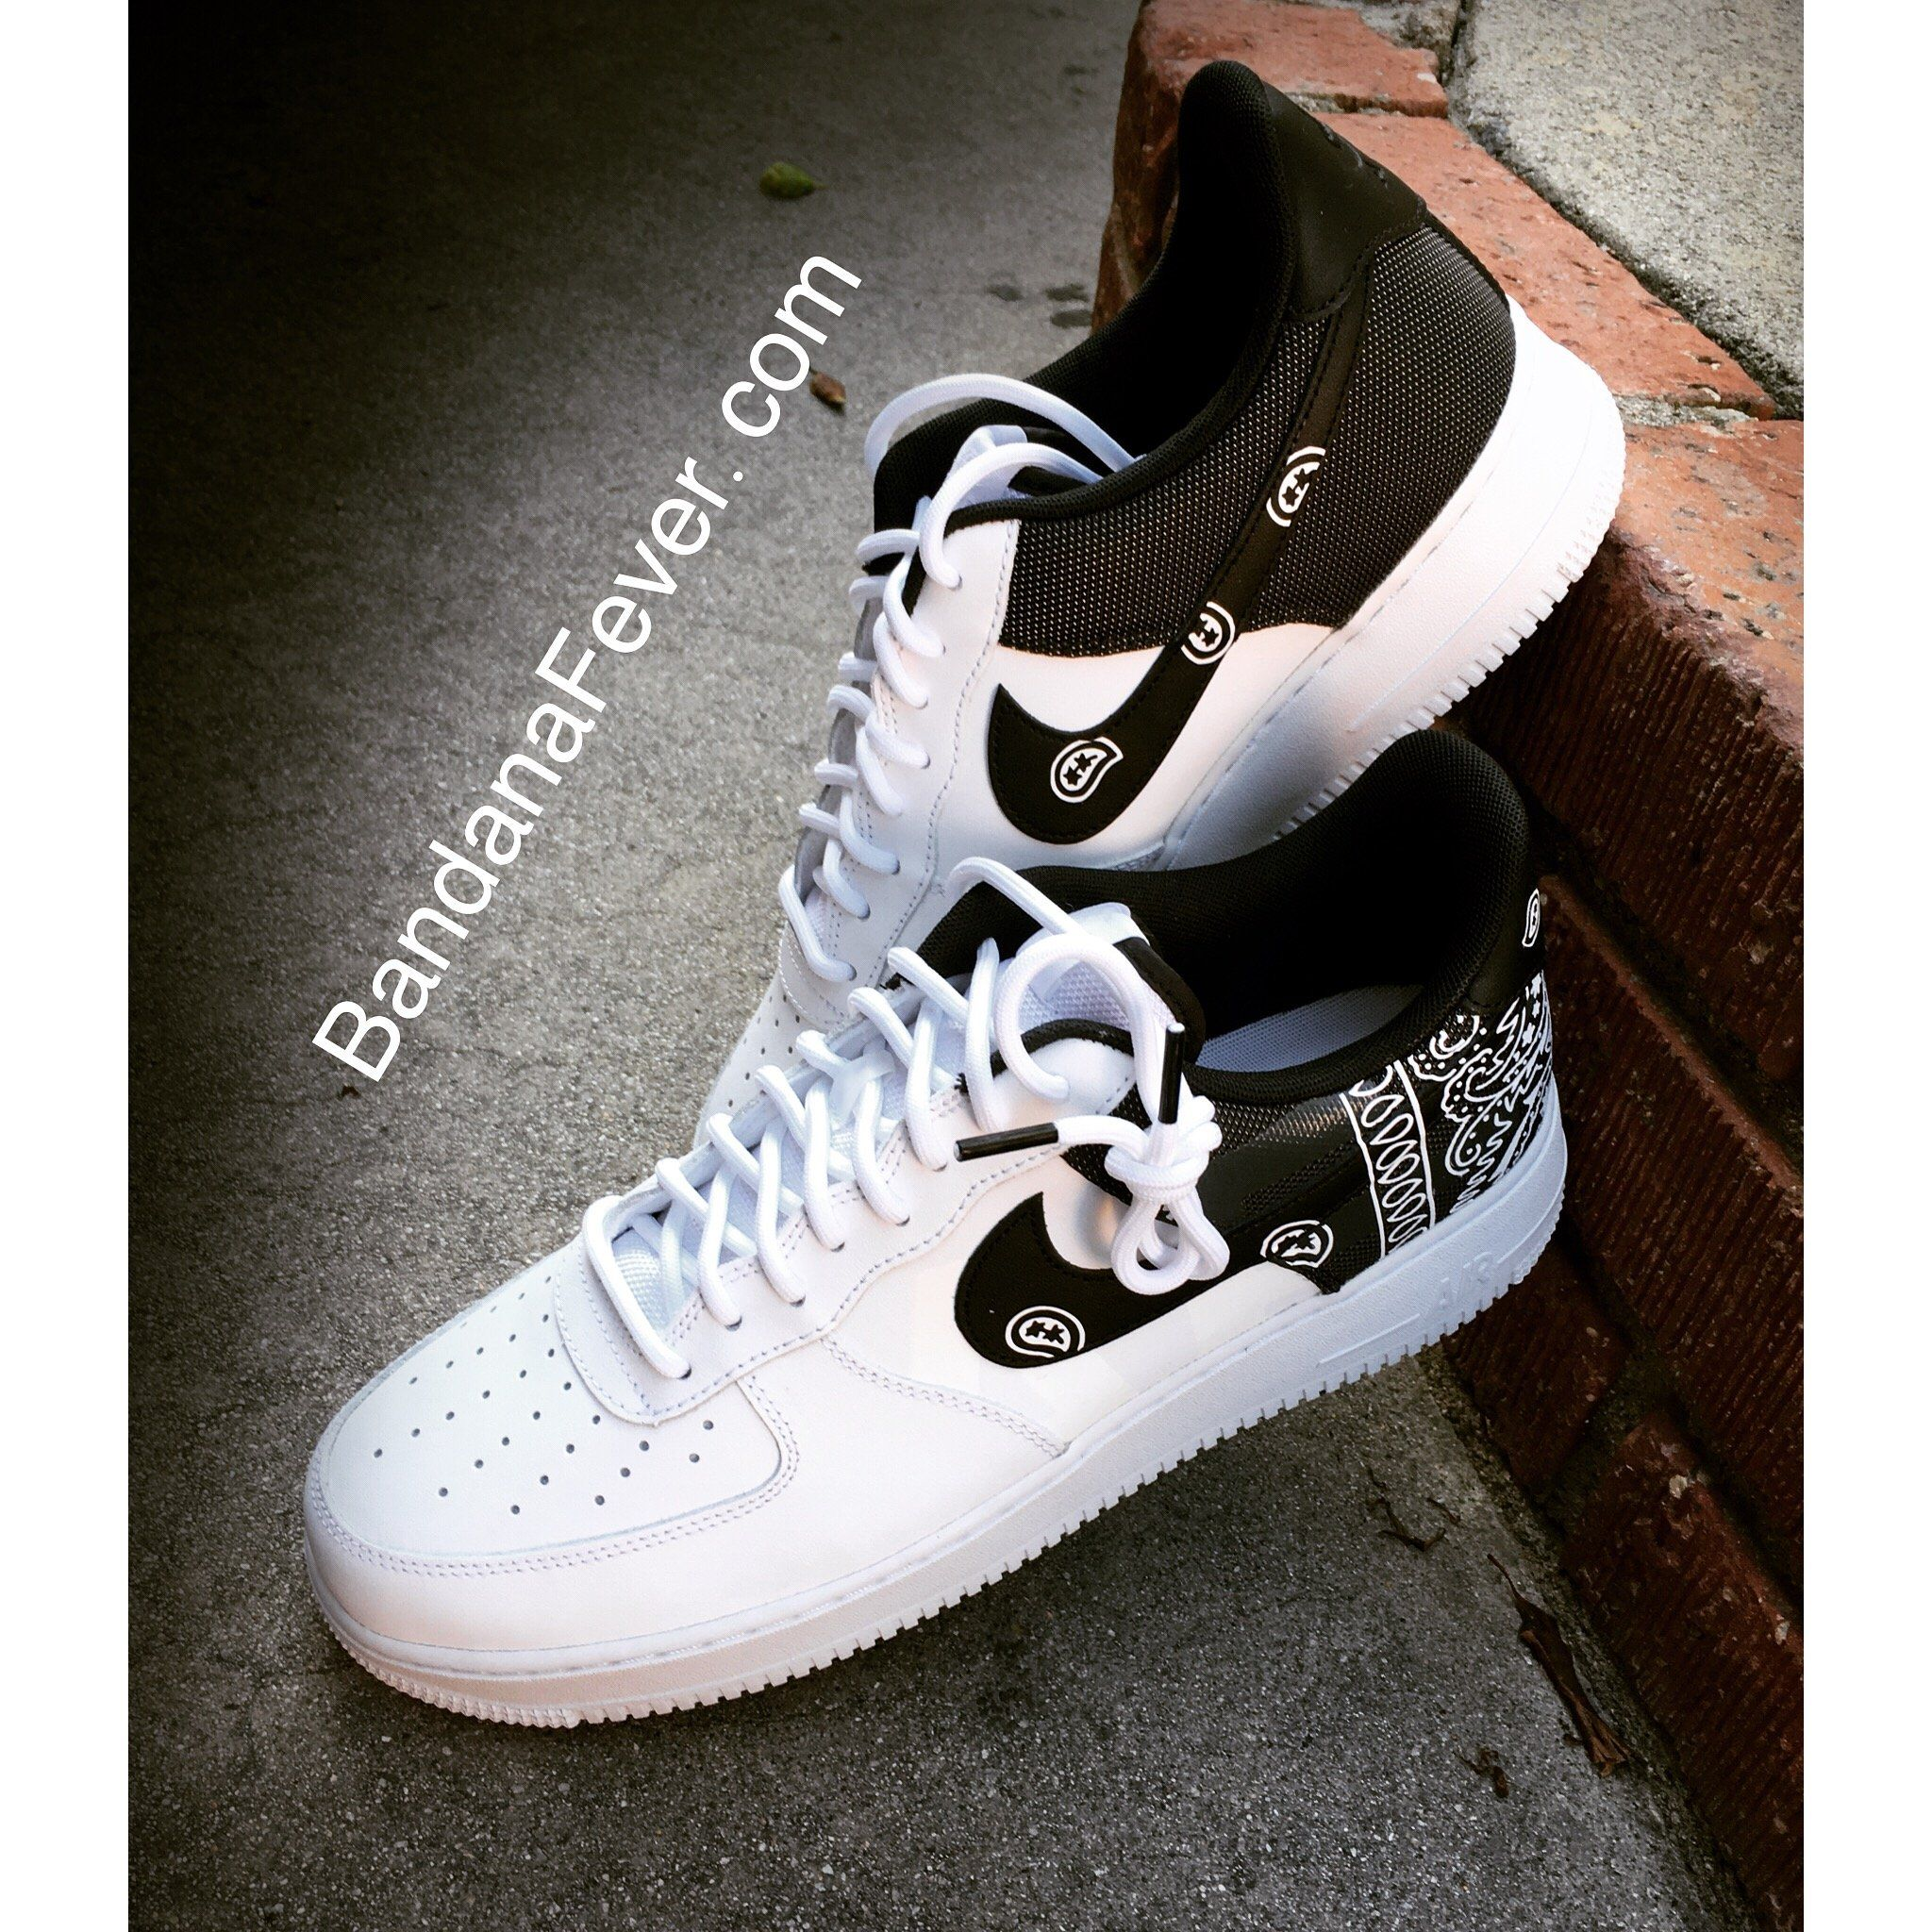 best cheap c8d60 04f6b Bandana Fever White Bandana Print Custom White Black Nike Air Force Shoes   la  sneakers  bandana  bandanafever  bronx  fashion  cpt  streetfashion ...